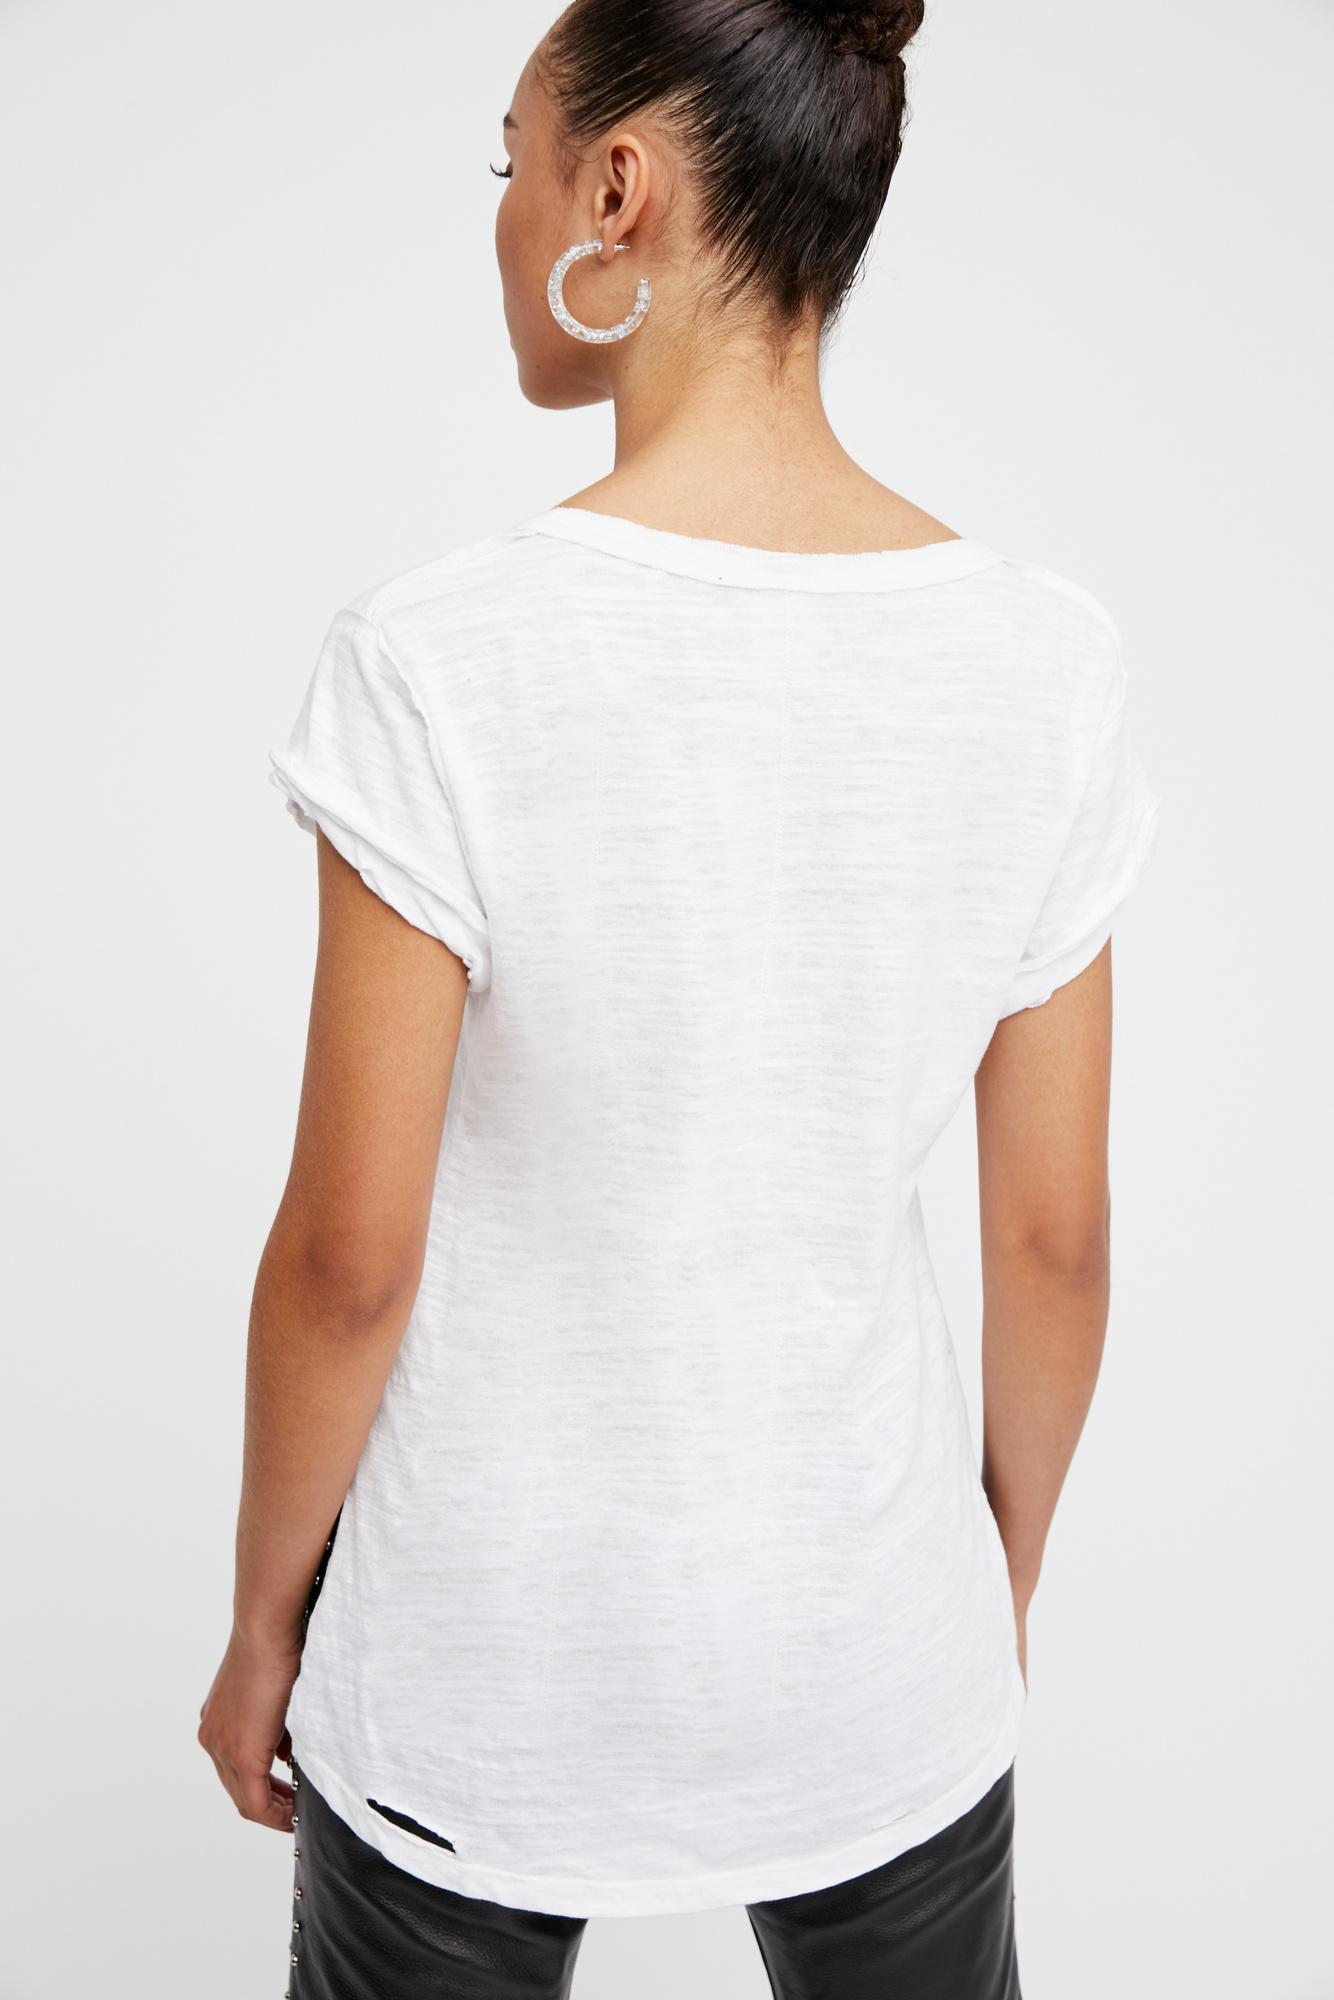 We The Free By Free PeopleClare Cap Sleeve T-ShirtWhite